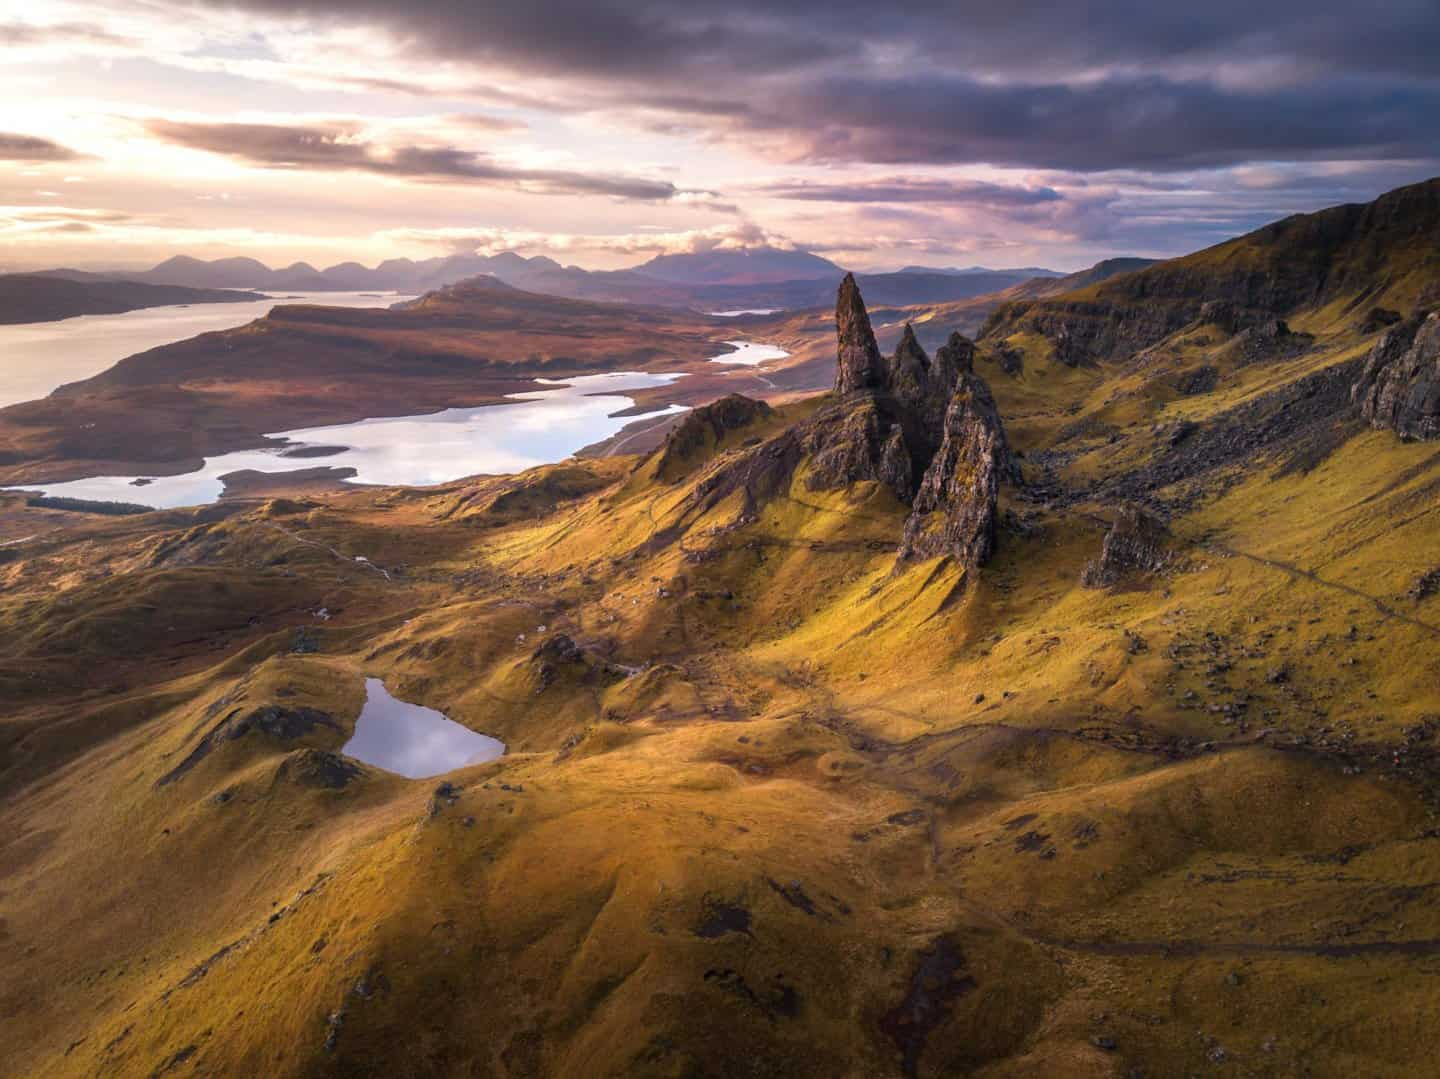 A stunning sunrise at the Old Man of Storr on Isle of Skye.